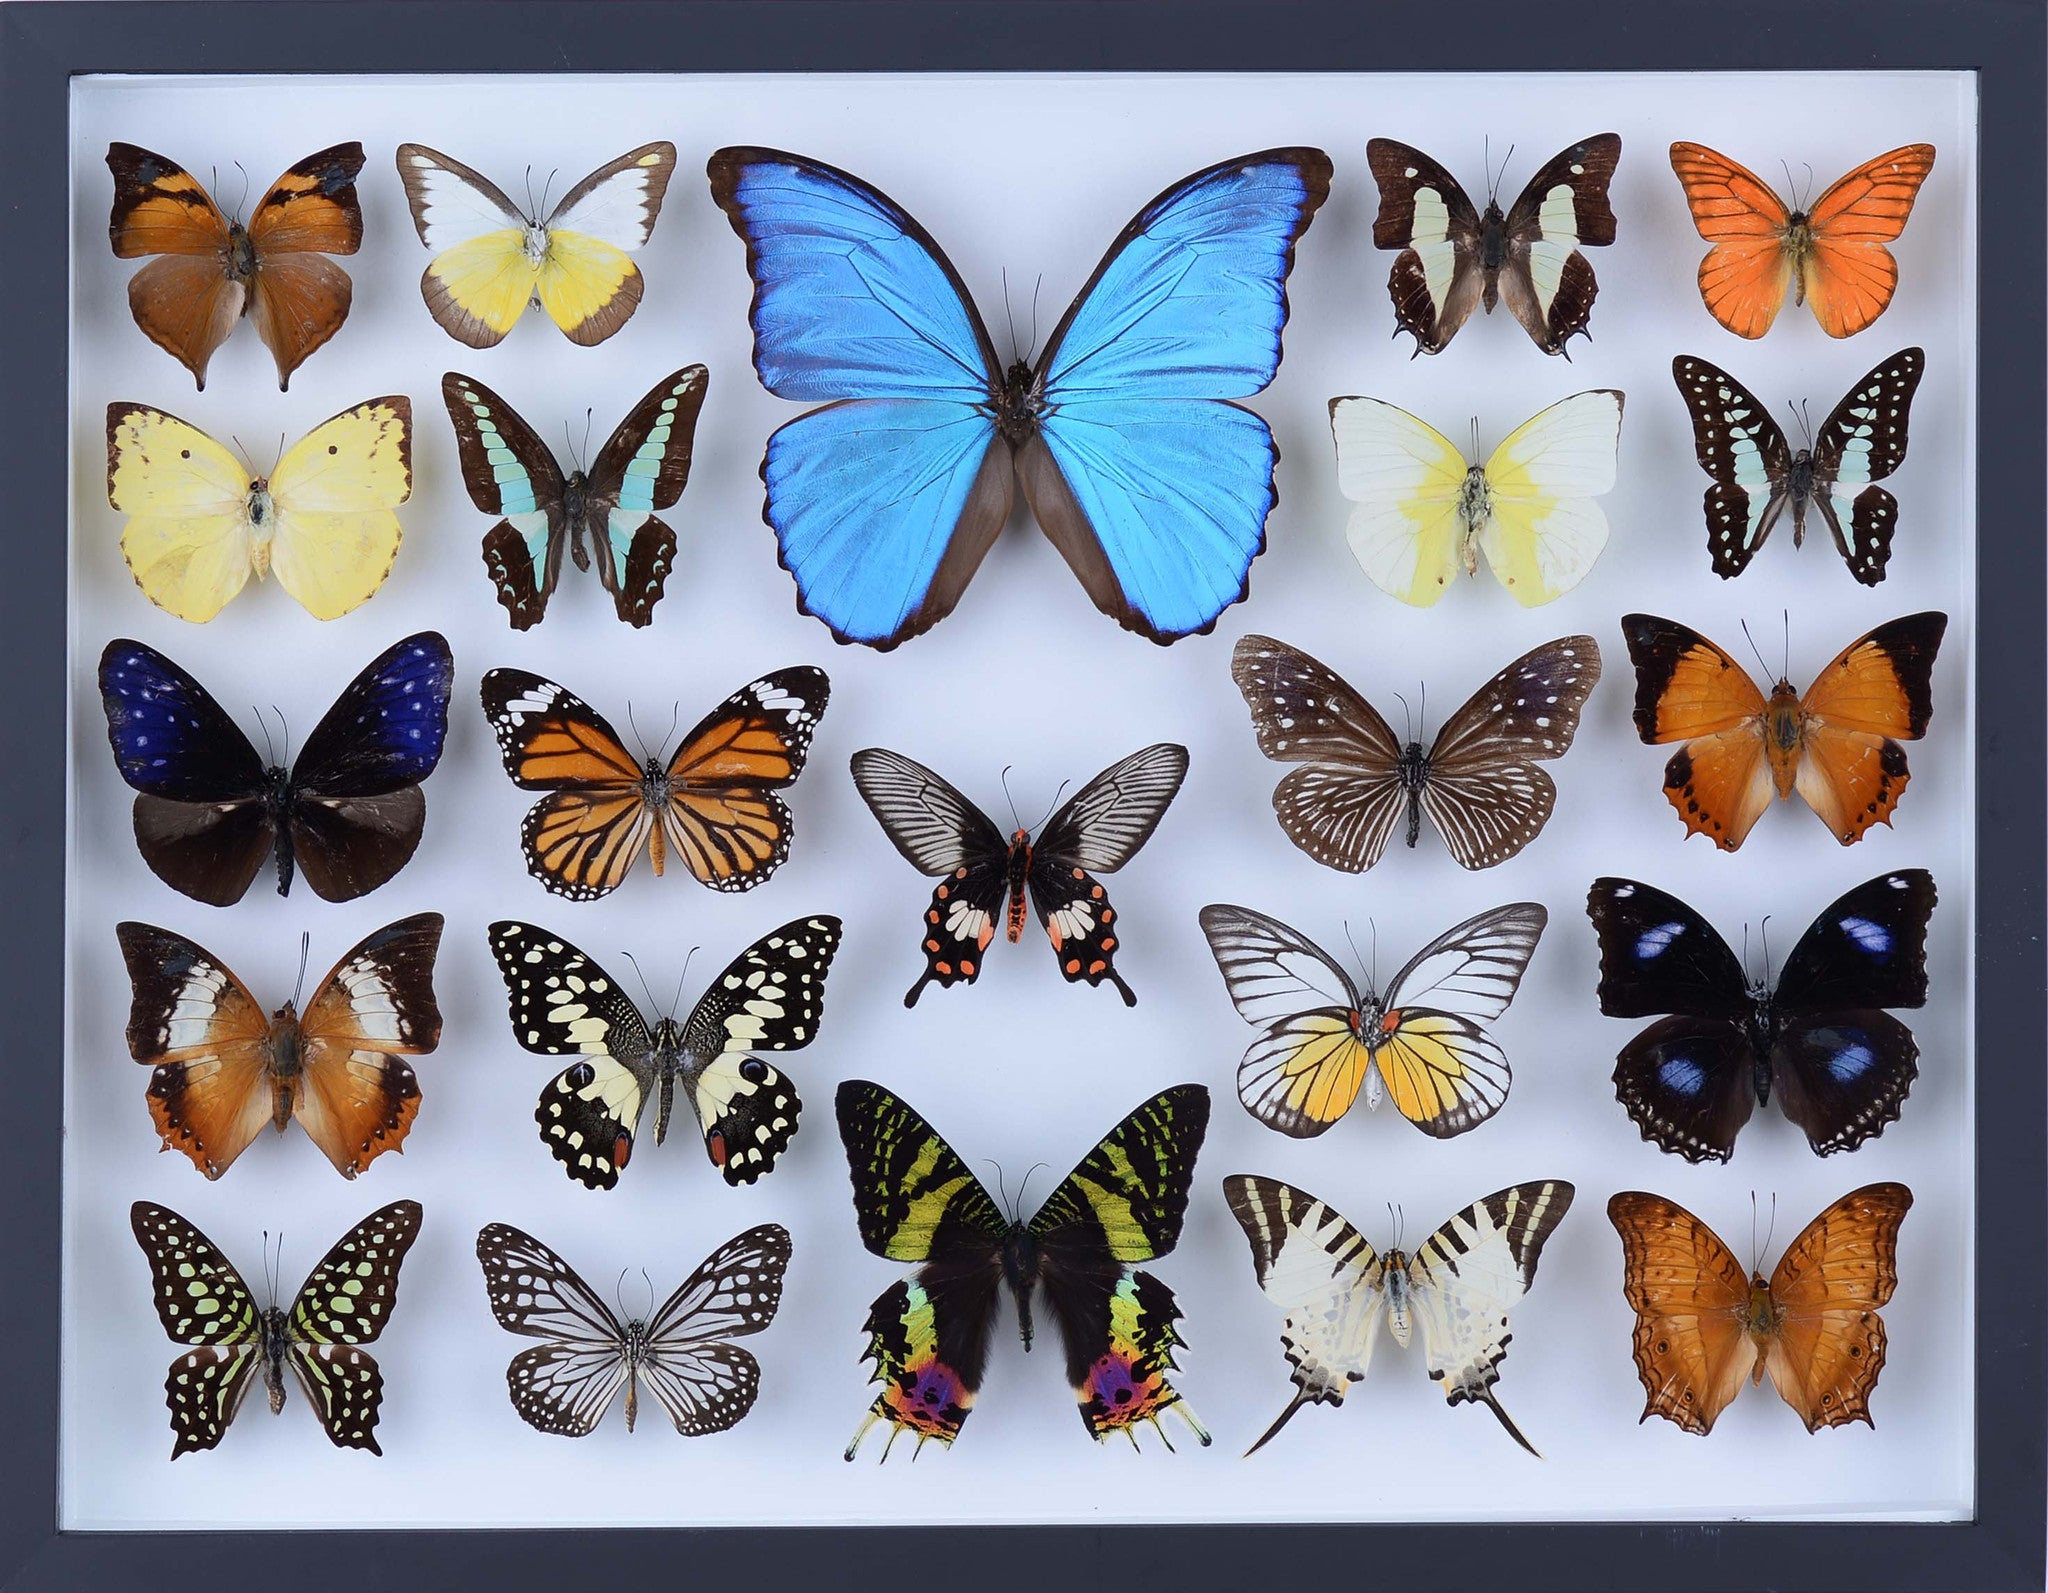 All In Glas.Real Butterfly Collection All Natural Butterflies Mounted Under Glass In A Wall Hanging Frame Taxidermy Butterfly Art 802